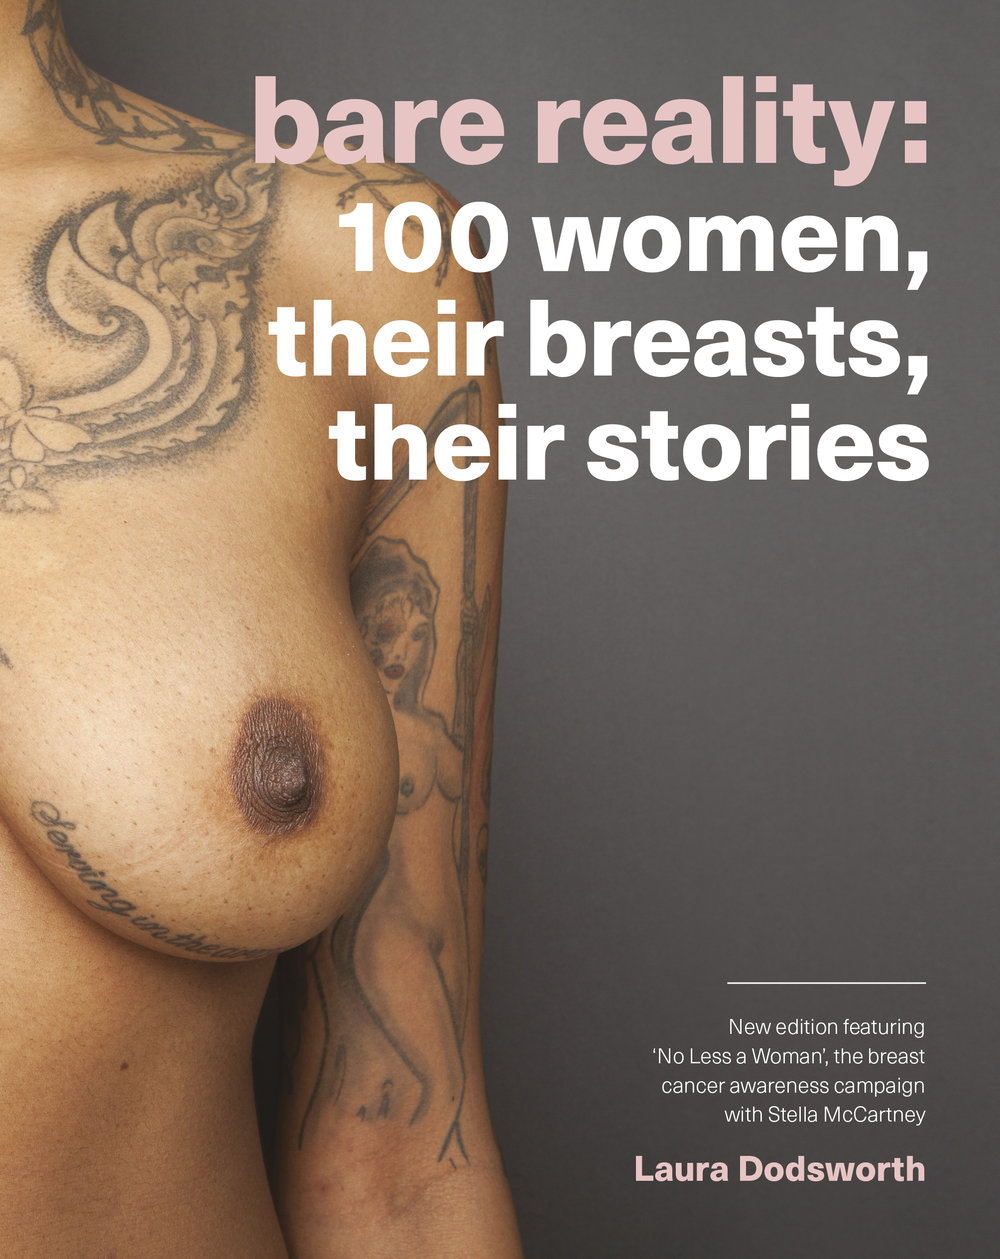 Bare reality - More than simply part of our bodies, breasts represent sexuality, motherhood and femininity. Read more